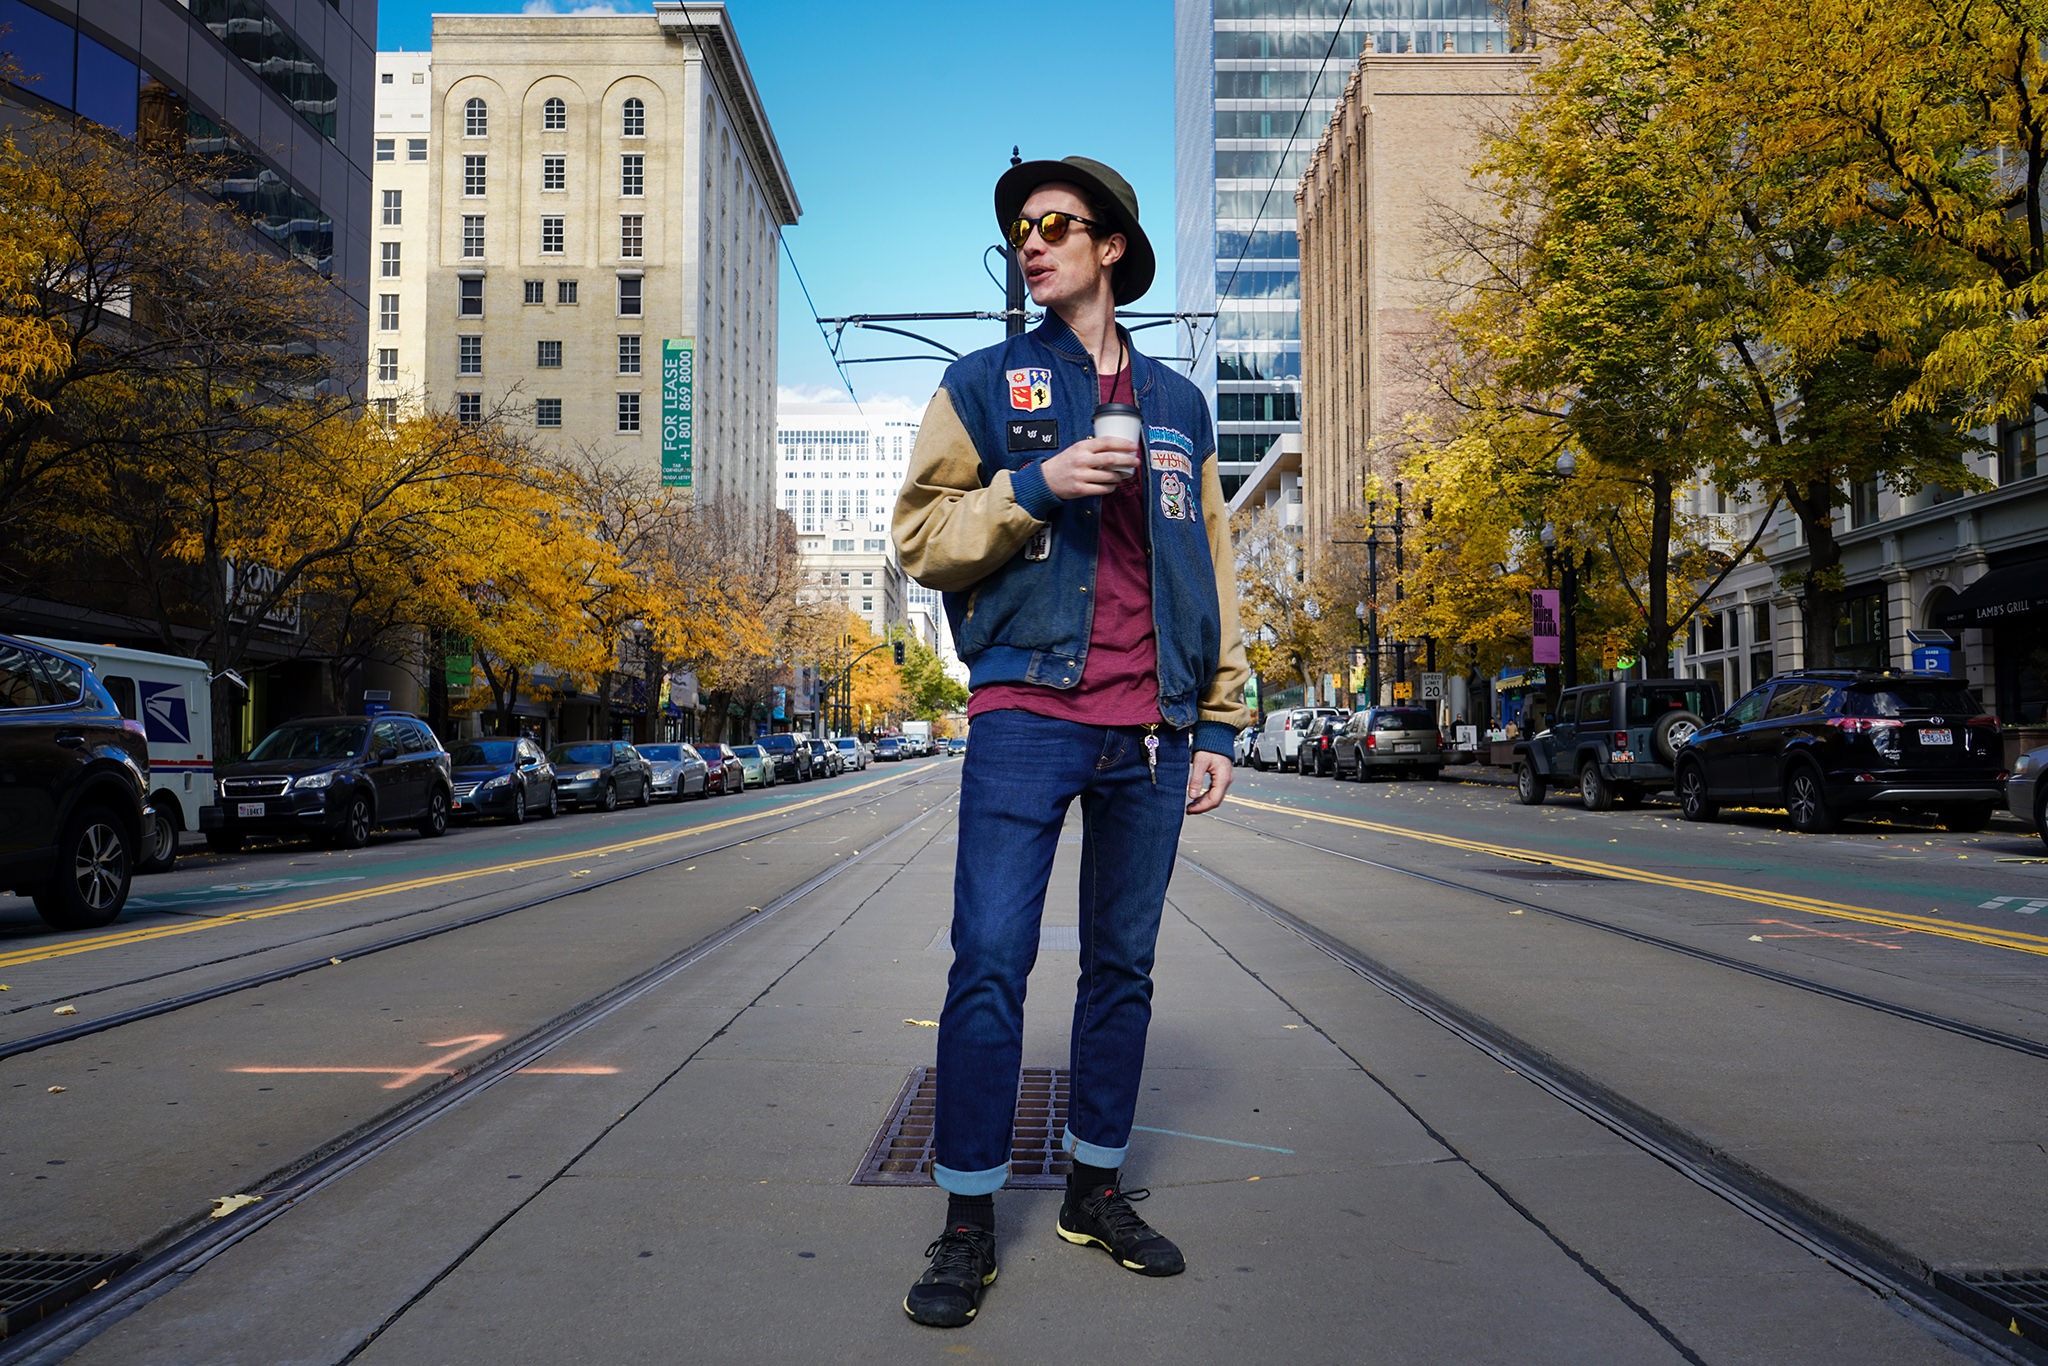 A nonchalant Serge stopping traffic in downtown Salt Lake City. Photo by Danny Graham.